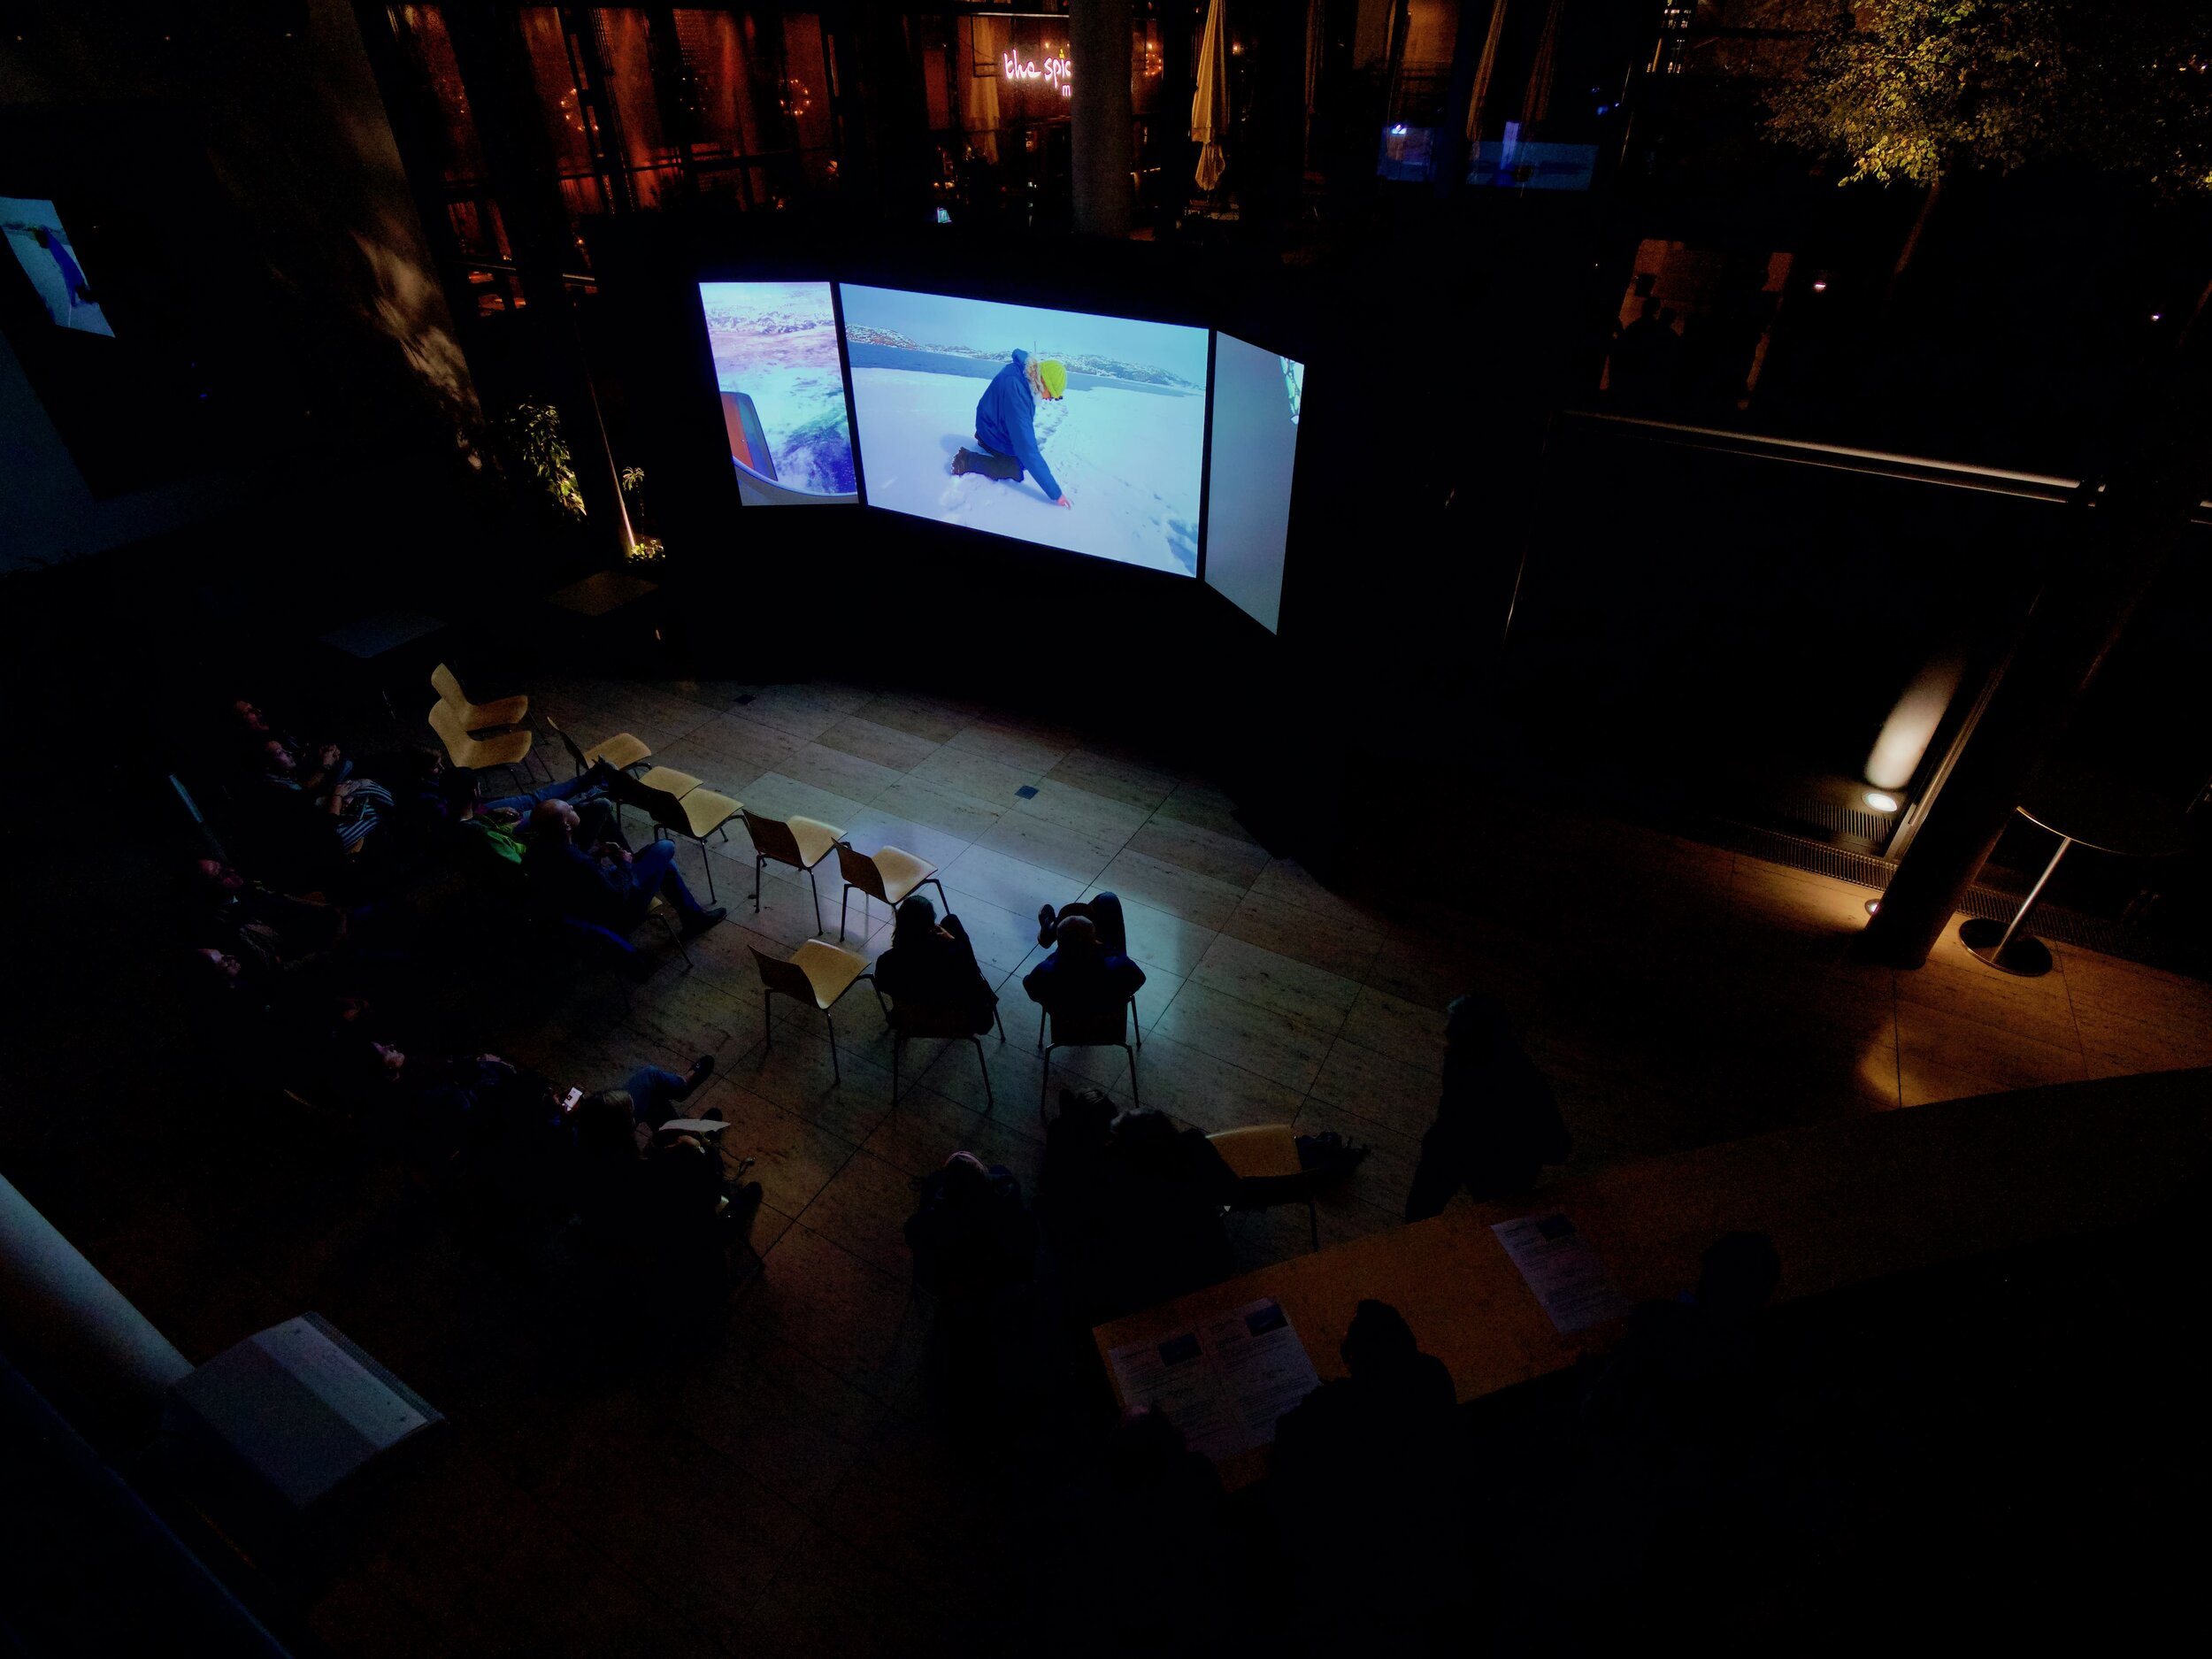 World première (triple screen projection) at Max Planck Institute, Munich, October 2019.